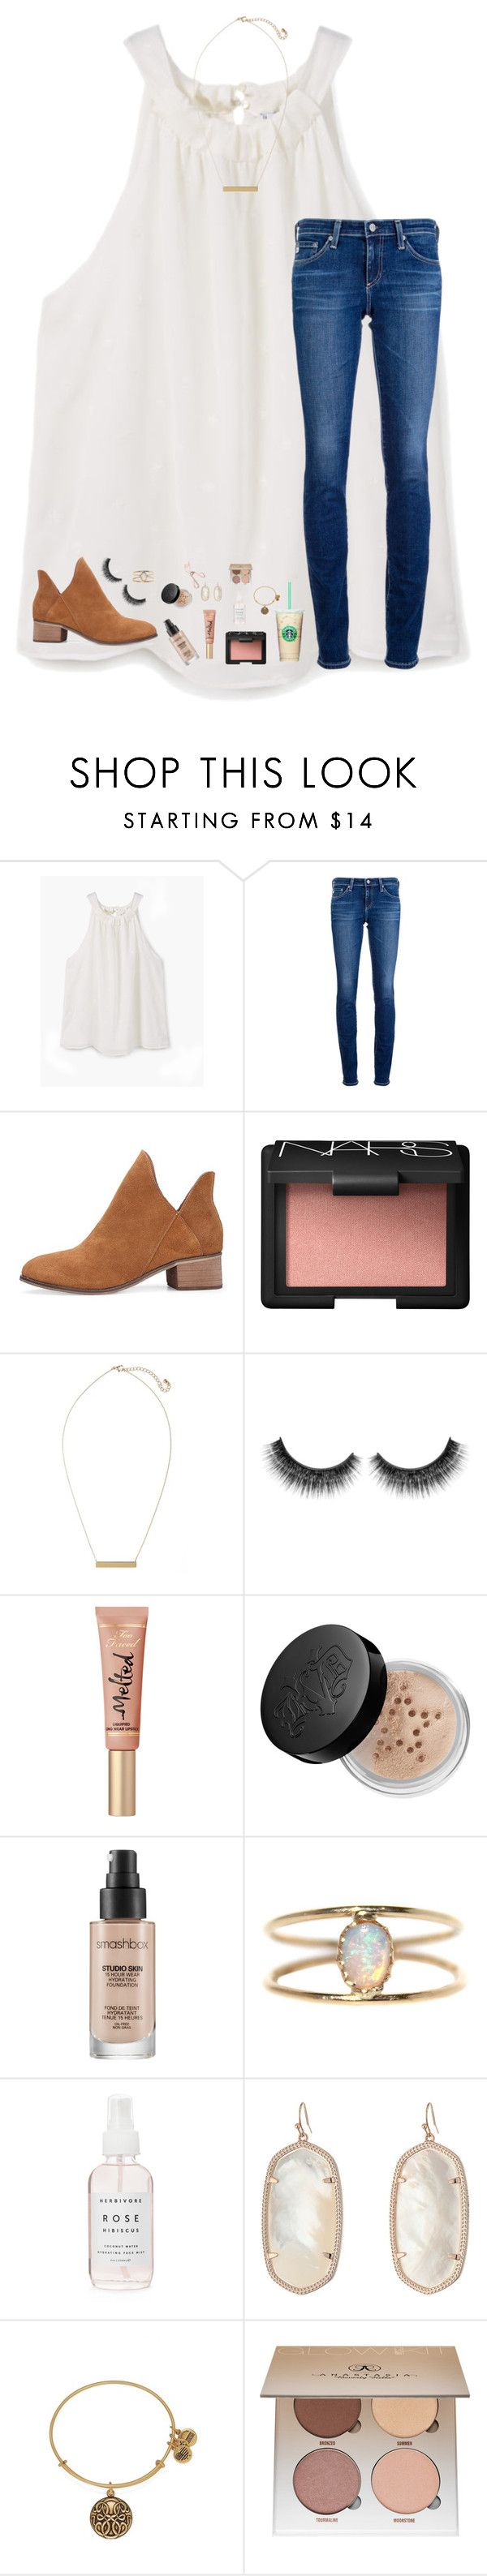 """i need song recommendations"" by lindsaygreys ❤ liked on Polyvore featuring MANGO, AG Adriano Goldschmied, NARS Cosmetics, BP., Kat Von D, Smashbox, LUMO, Herbivore, Kendra Scott and Alex and Ani"